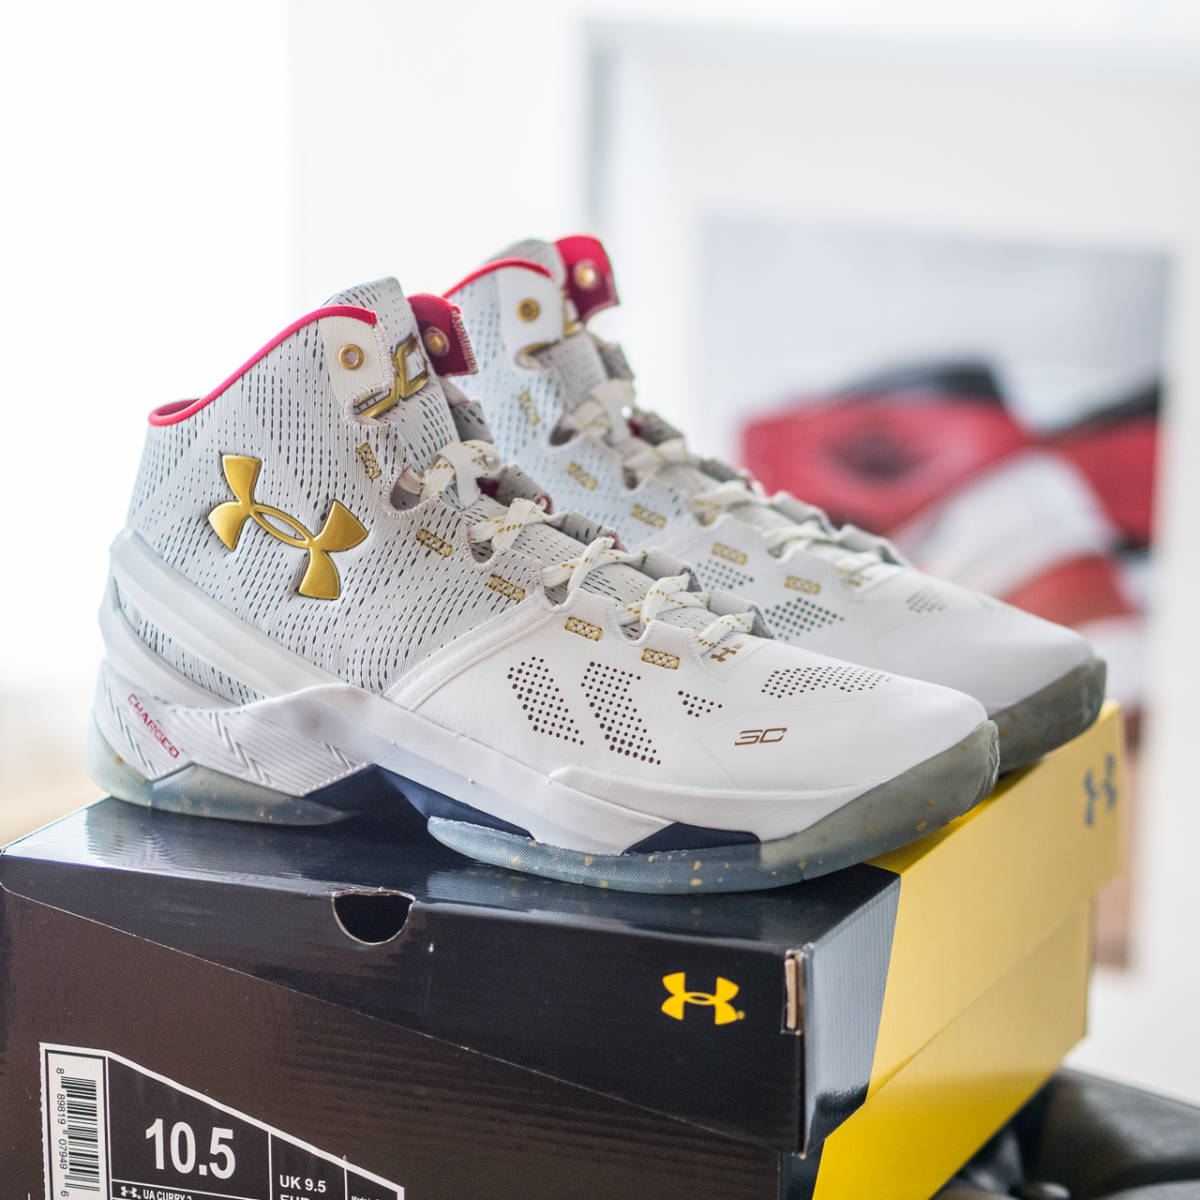 154c2aa62e2  送料無料 UNDER ARMOUR UA CURRY 2 All star アンダーアーマー カリー オールスター NBA Stephen  ステフィン 1259007-102 US10.5 28.5cm